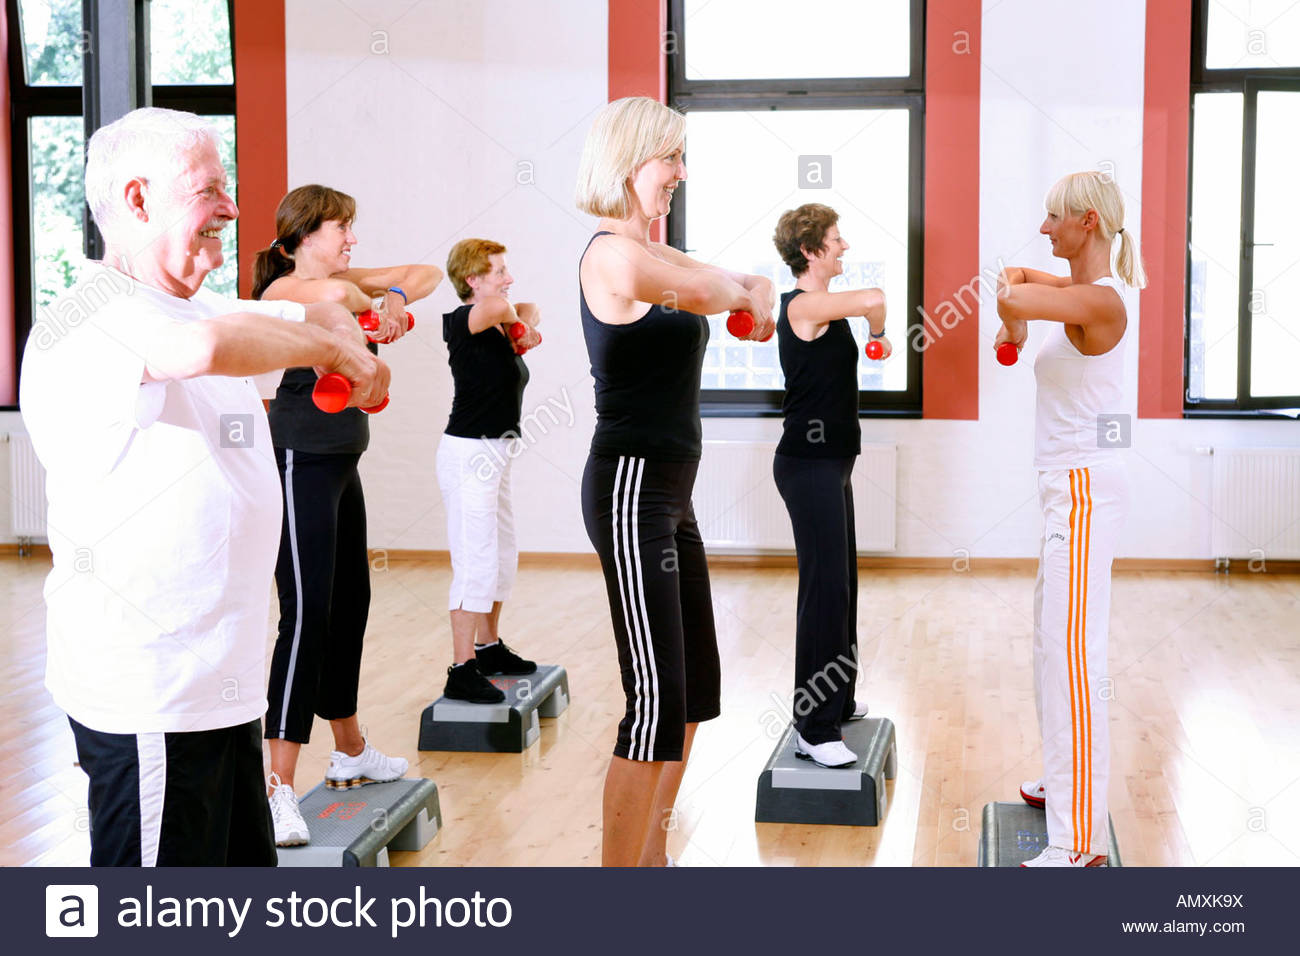 Group of people exercising in gym - Stock Image